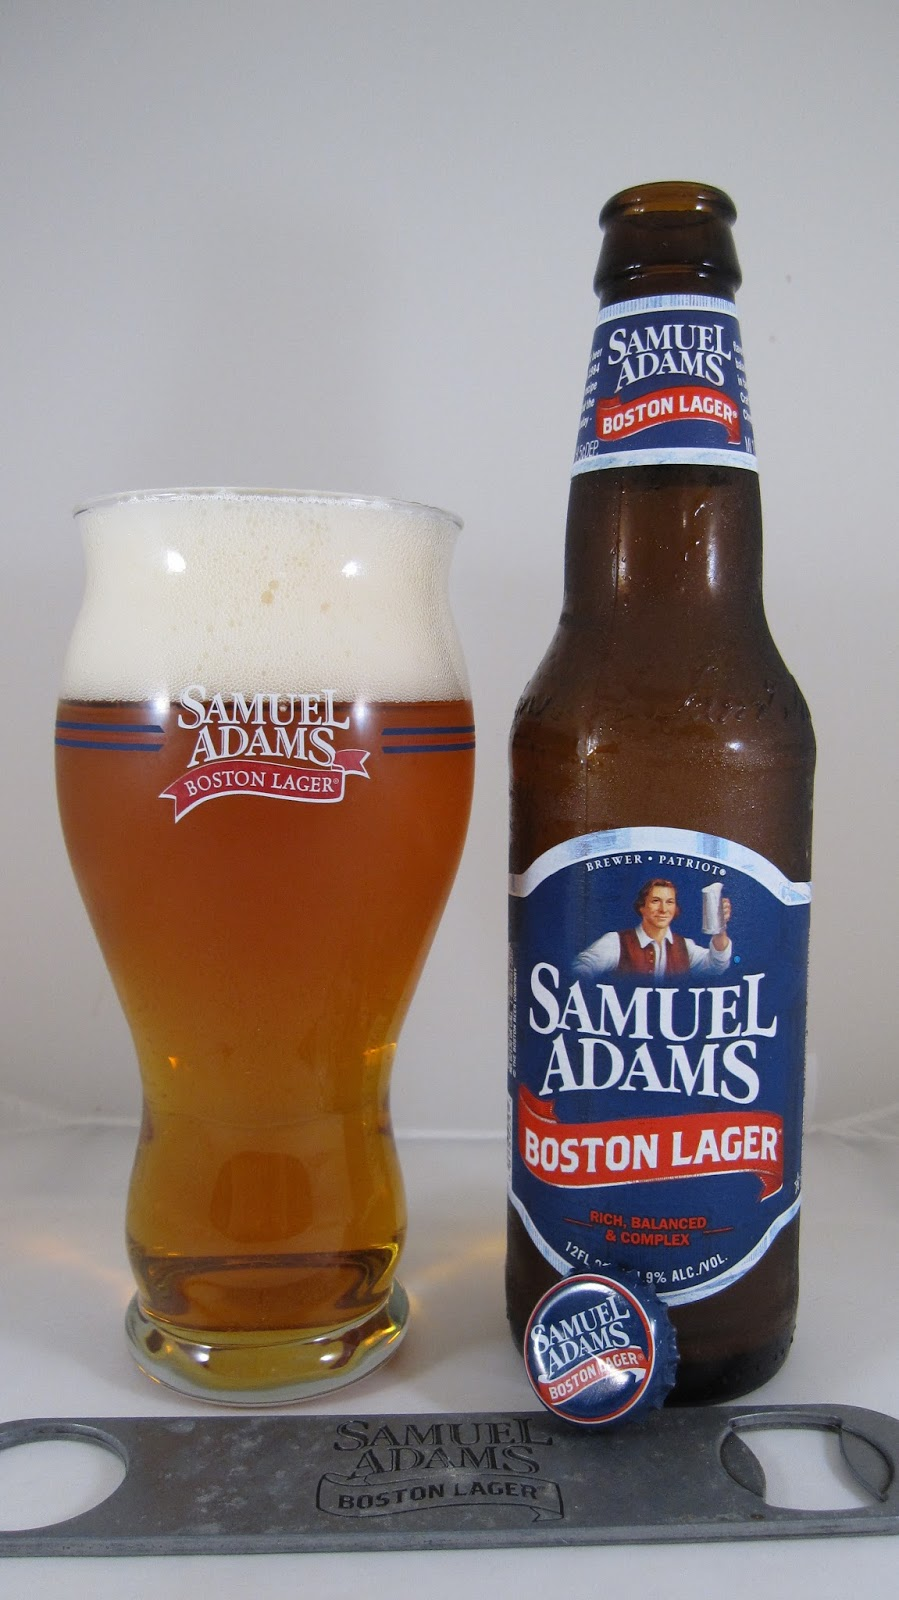 boston beer and samuel adams swot Wikiwealth offers a comprehensive swot analysis of boston beer (sam) our free research report includes boston beer's strengths, weaknesses, opportunities, and threats  boston beer markets the samuel adams brand of beer (read full profile)  check out wikiwealth's entire database of free swot reports or use our swot analysis generator.